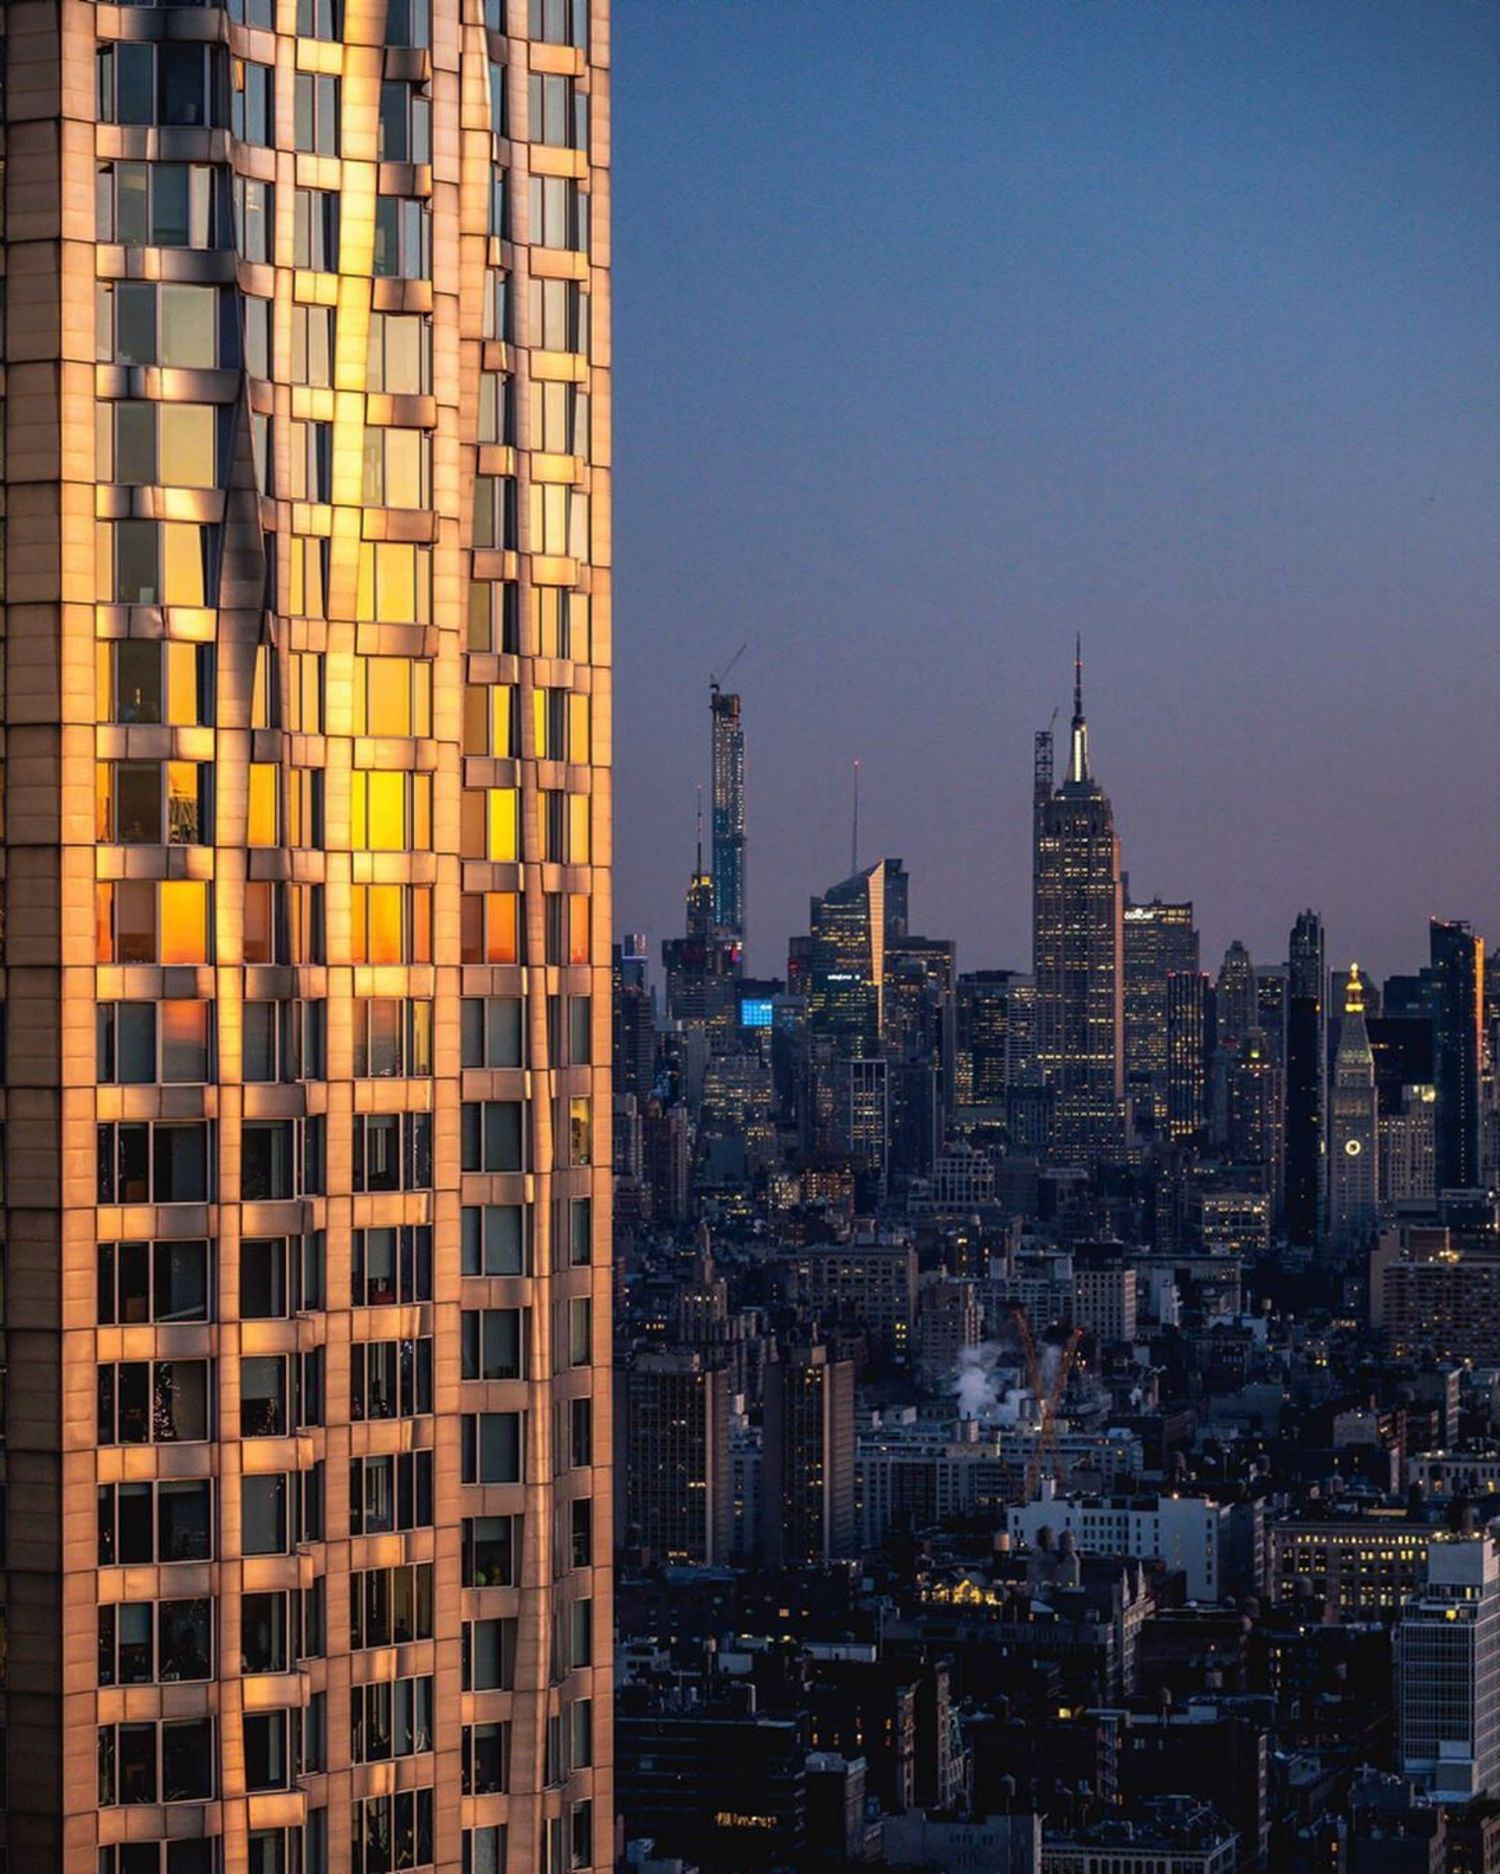 New York by Gehry, as seen from 130 Williams